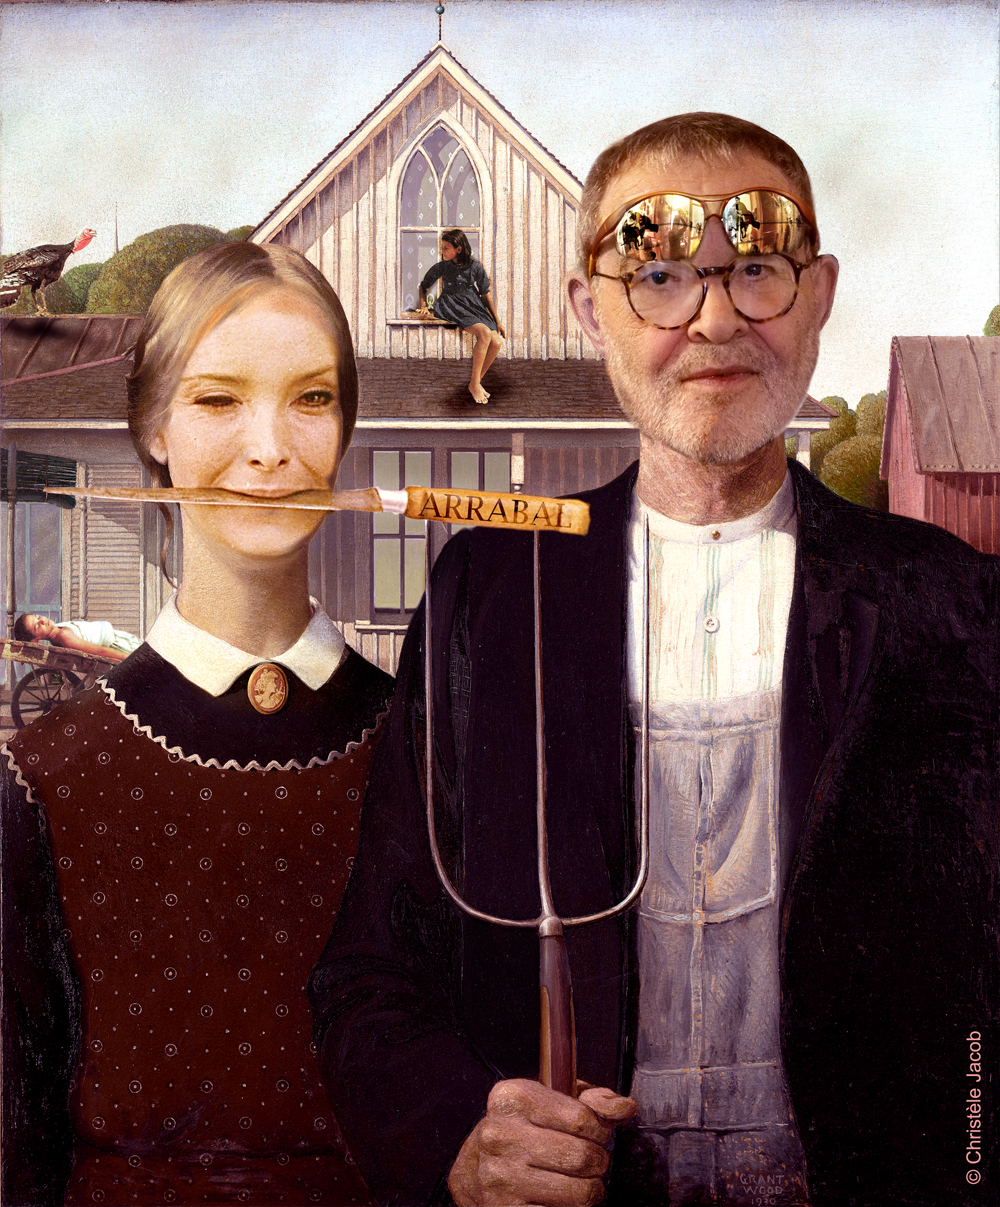 american-gothic-grant-wood-74x62-1930